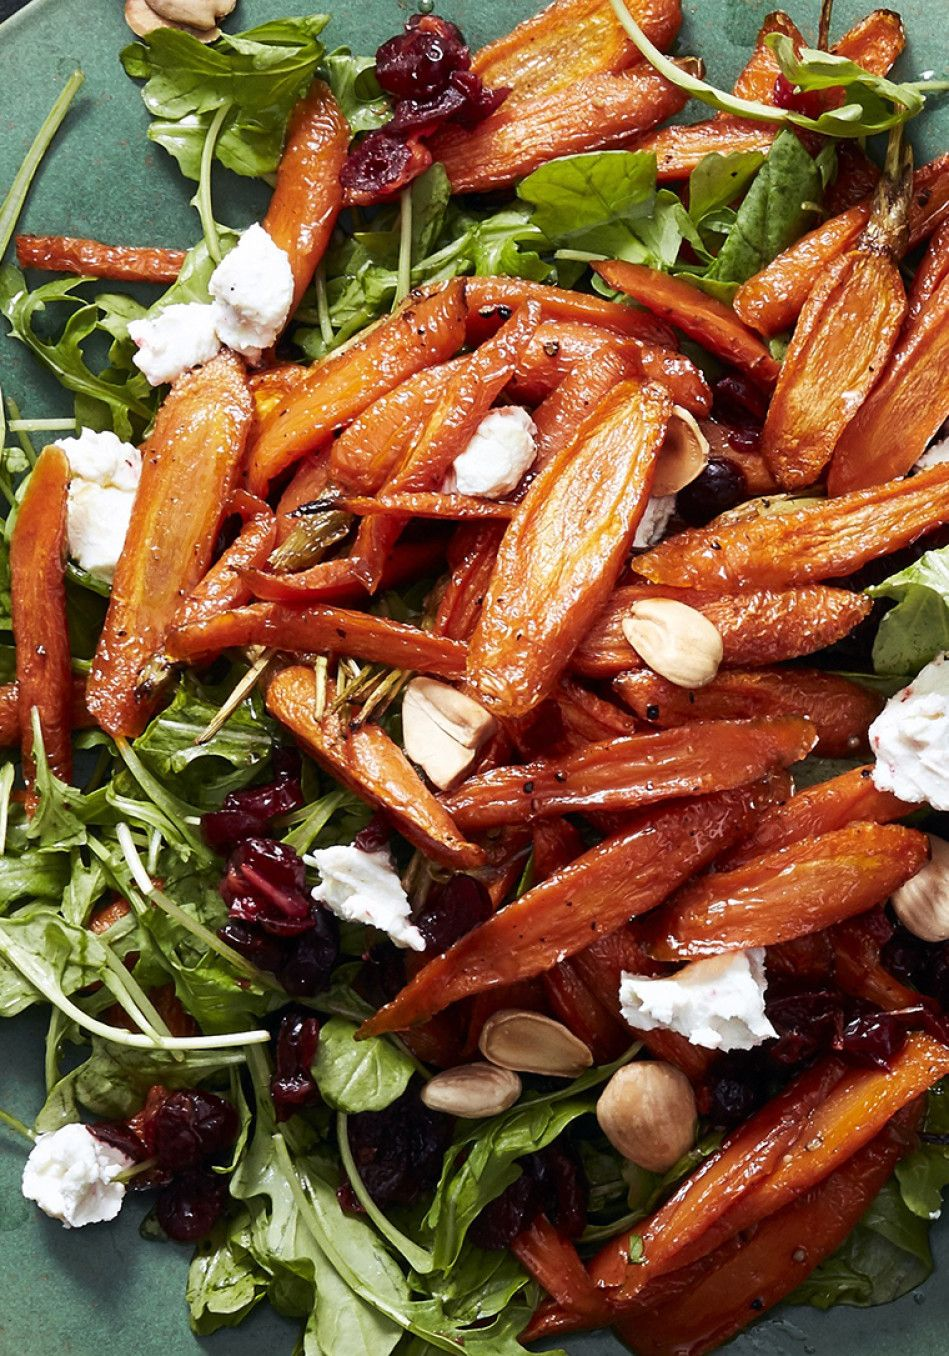 Ina Garten Butternut Squash ina garten's maple-roasted carrot salad recipe | ina garten salad